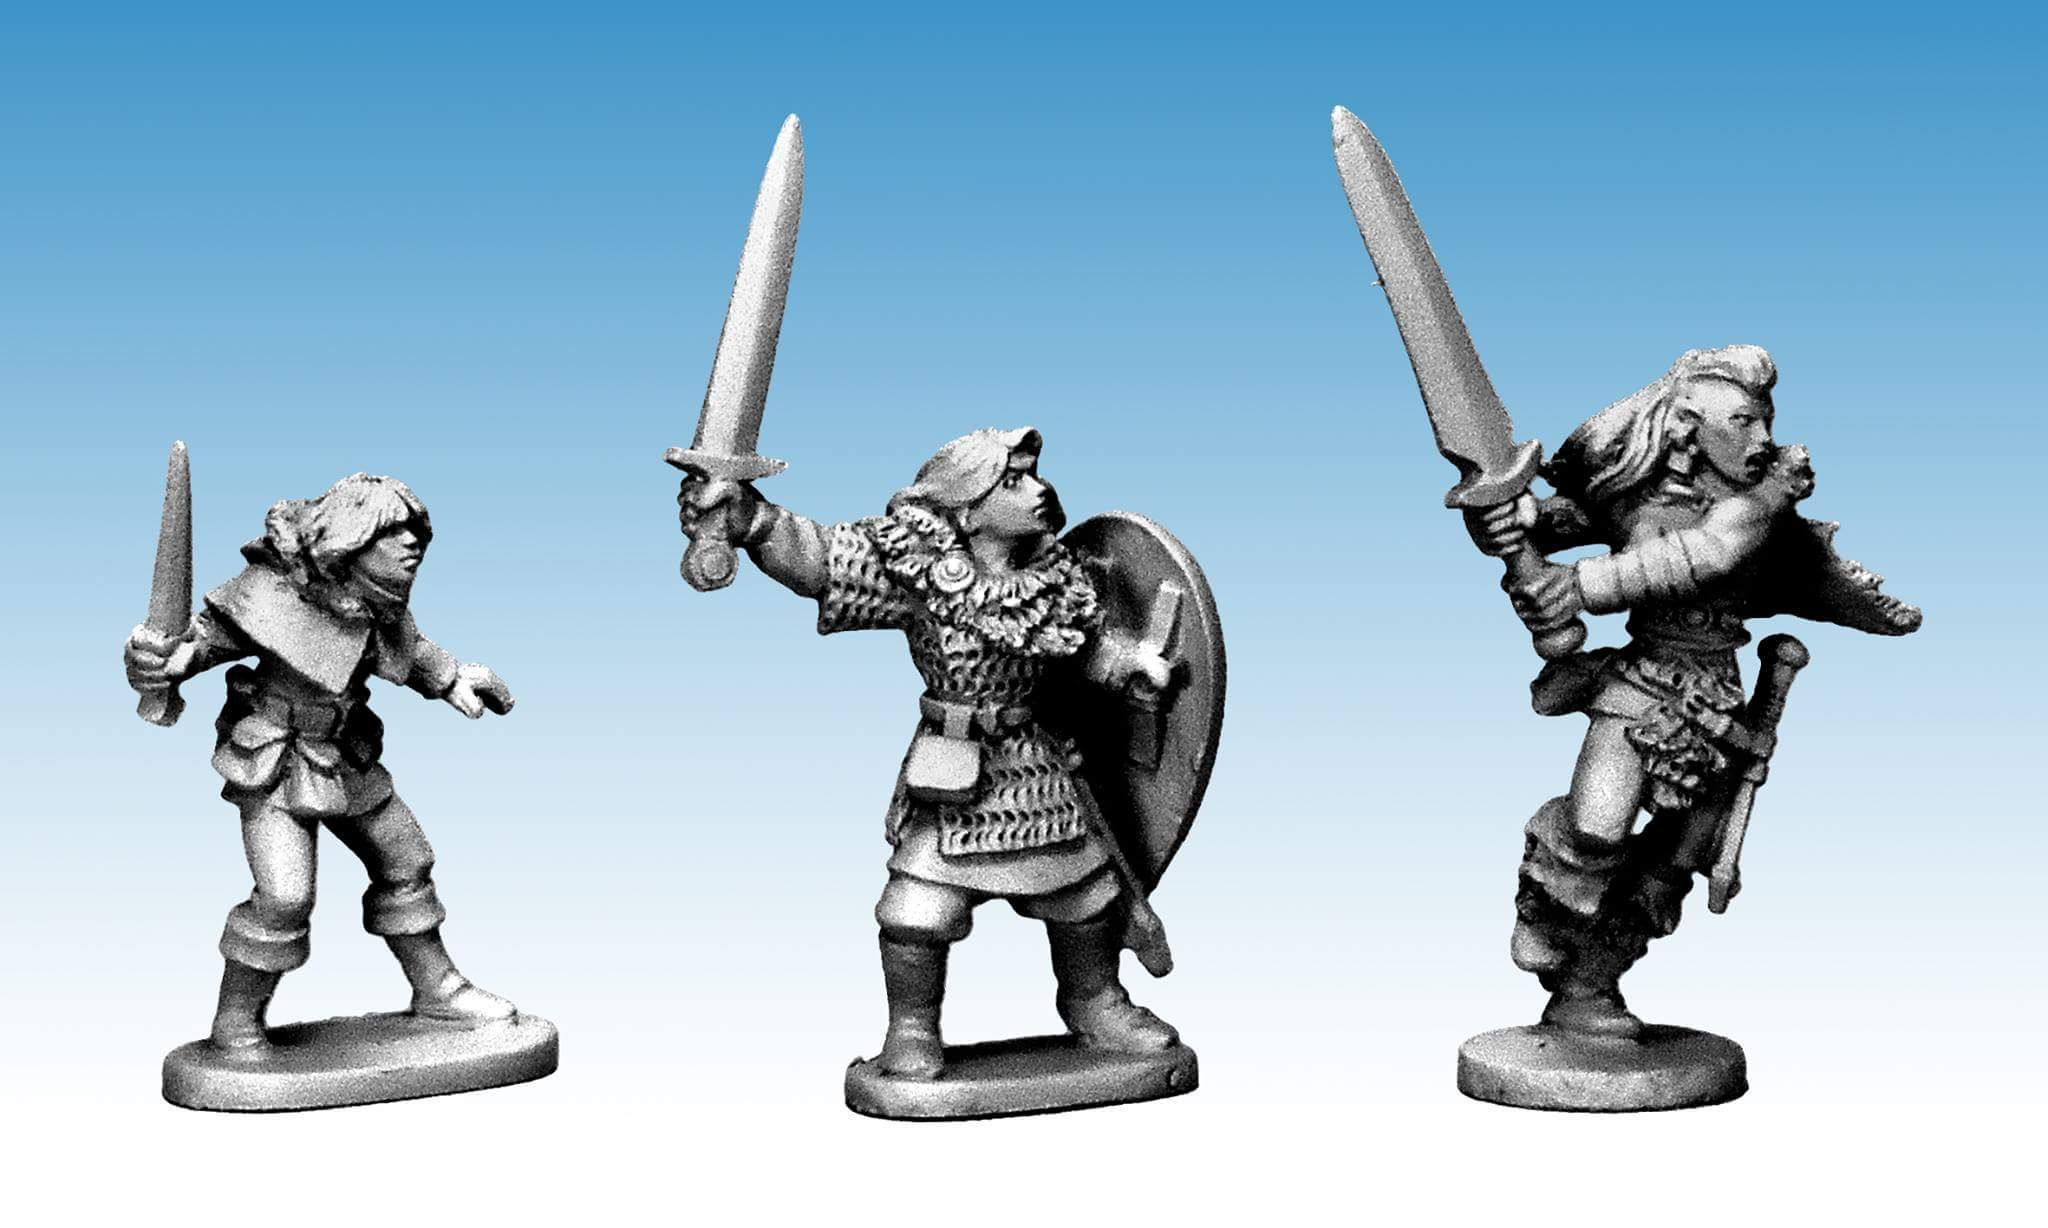 North Star Look Ahead To Frostgrave Female Figures & Oathmark